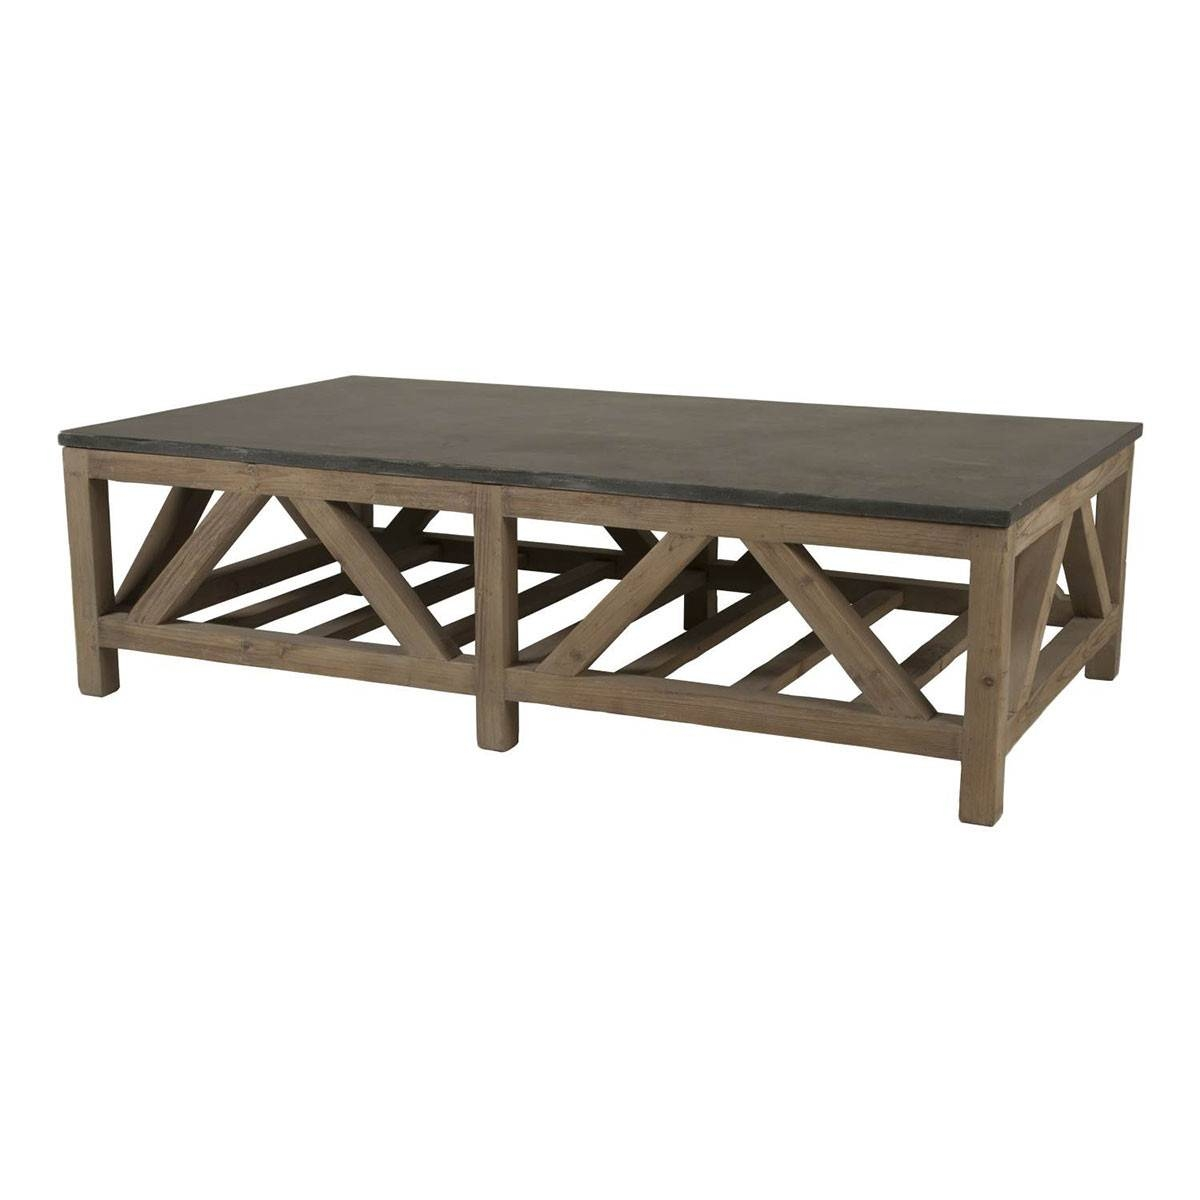 Blue Stone Coffee Table - Smoke Gray + Blue Stone intended for Stone Coffee Table (Image 2 of 15)